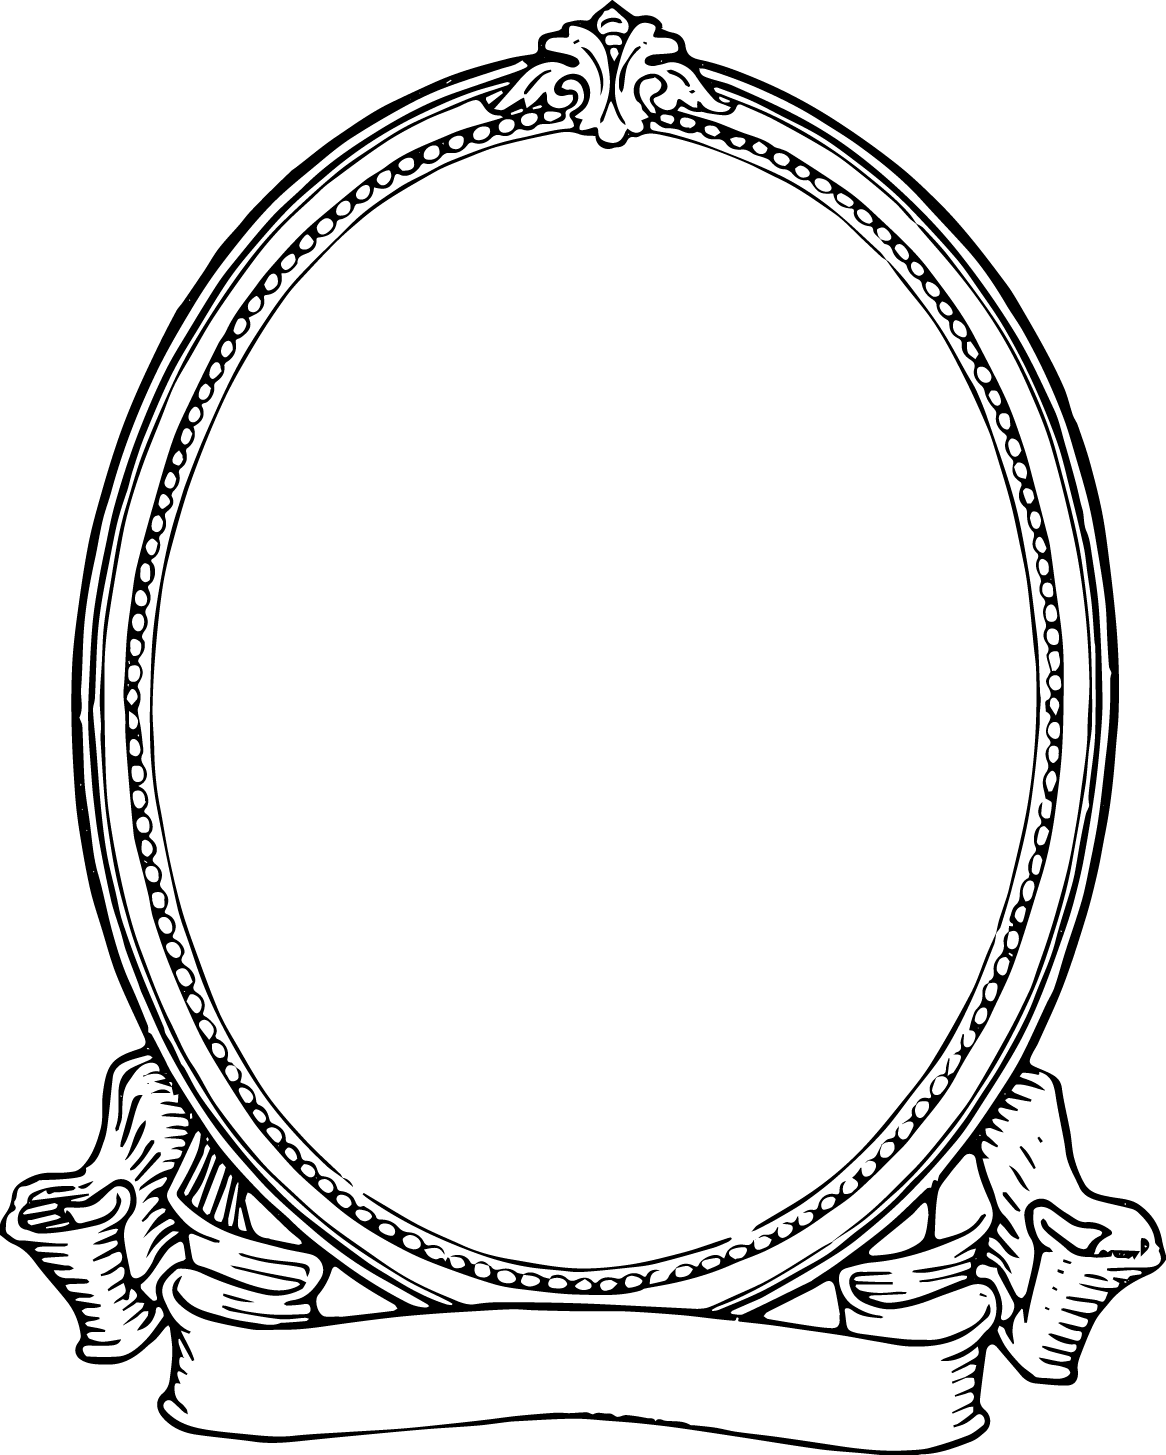 Napkin clipart fancy. Printable frames and borders